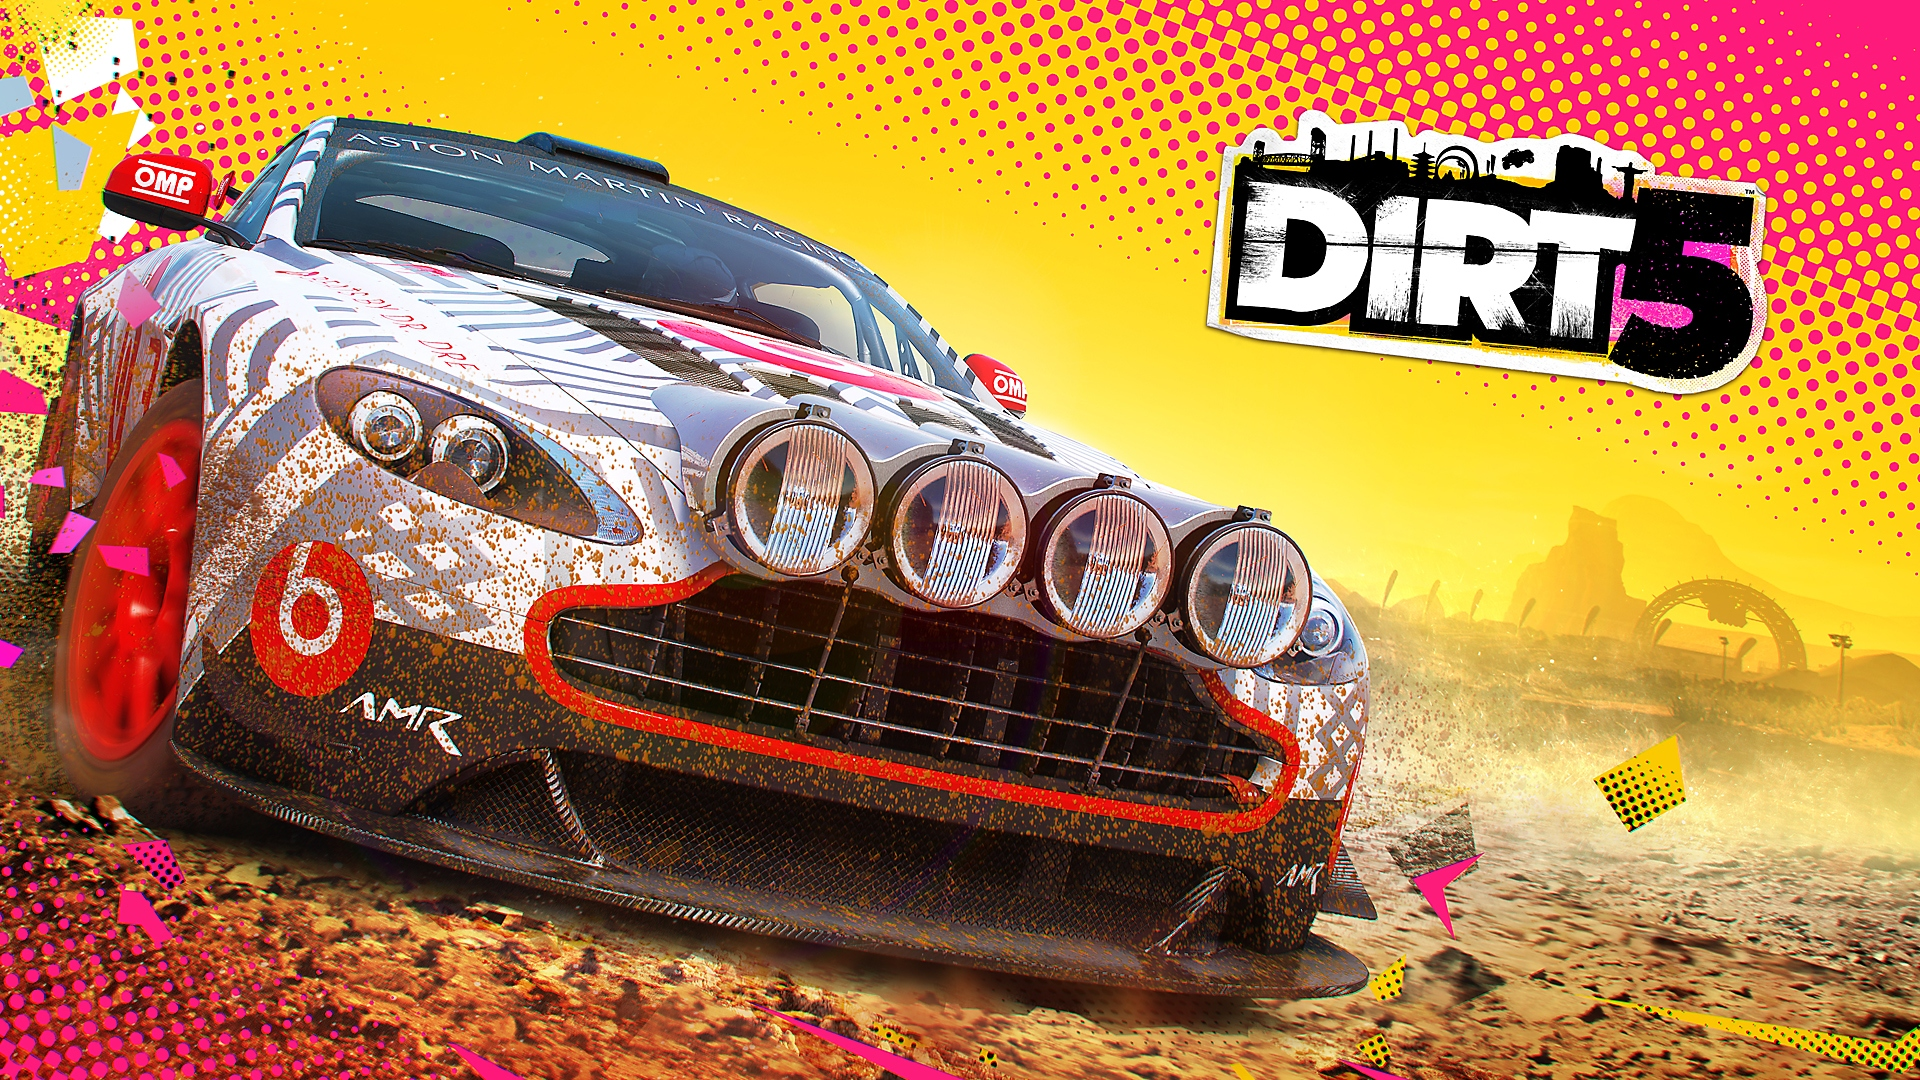 DiRT 5 kapak görseli